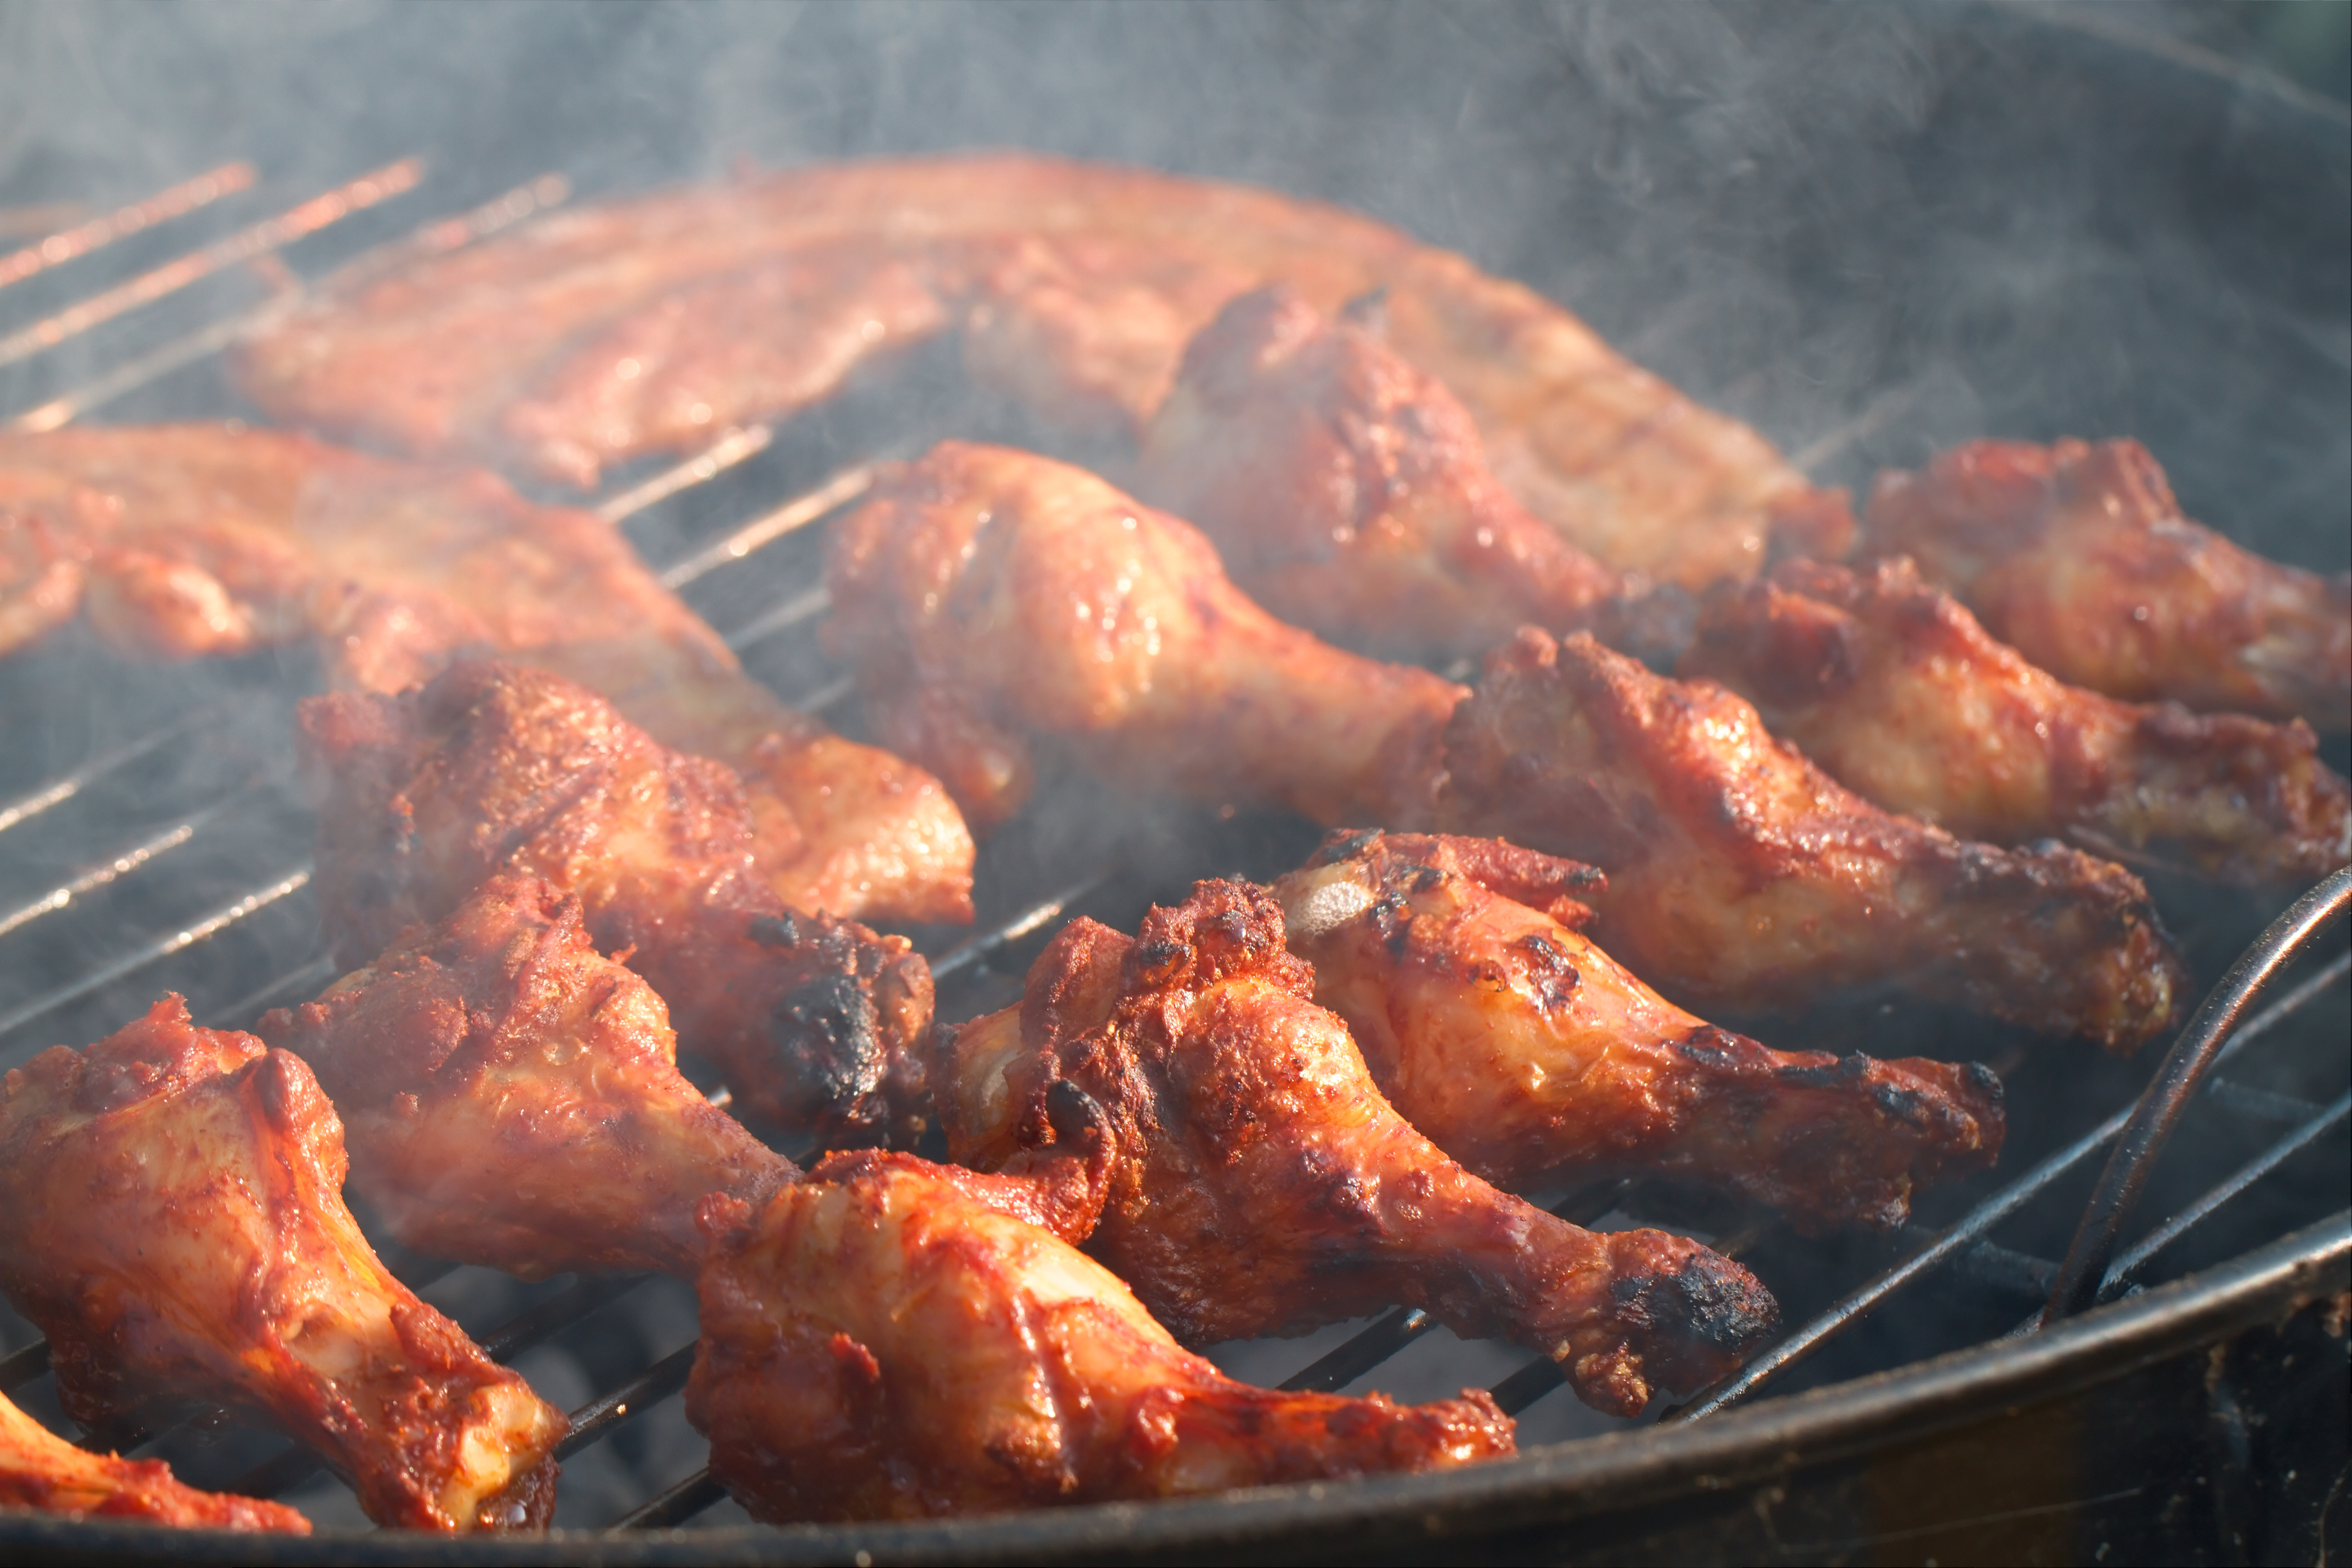 File:I just love barbeque!! (4642596714).jpg - Wikimedia Commons Barbeque